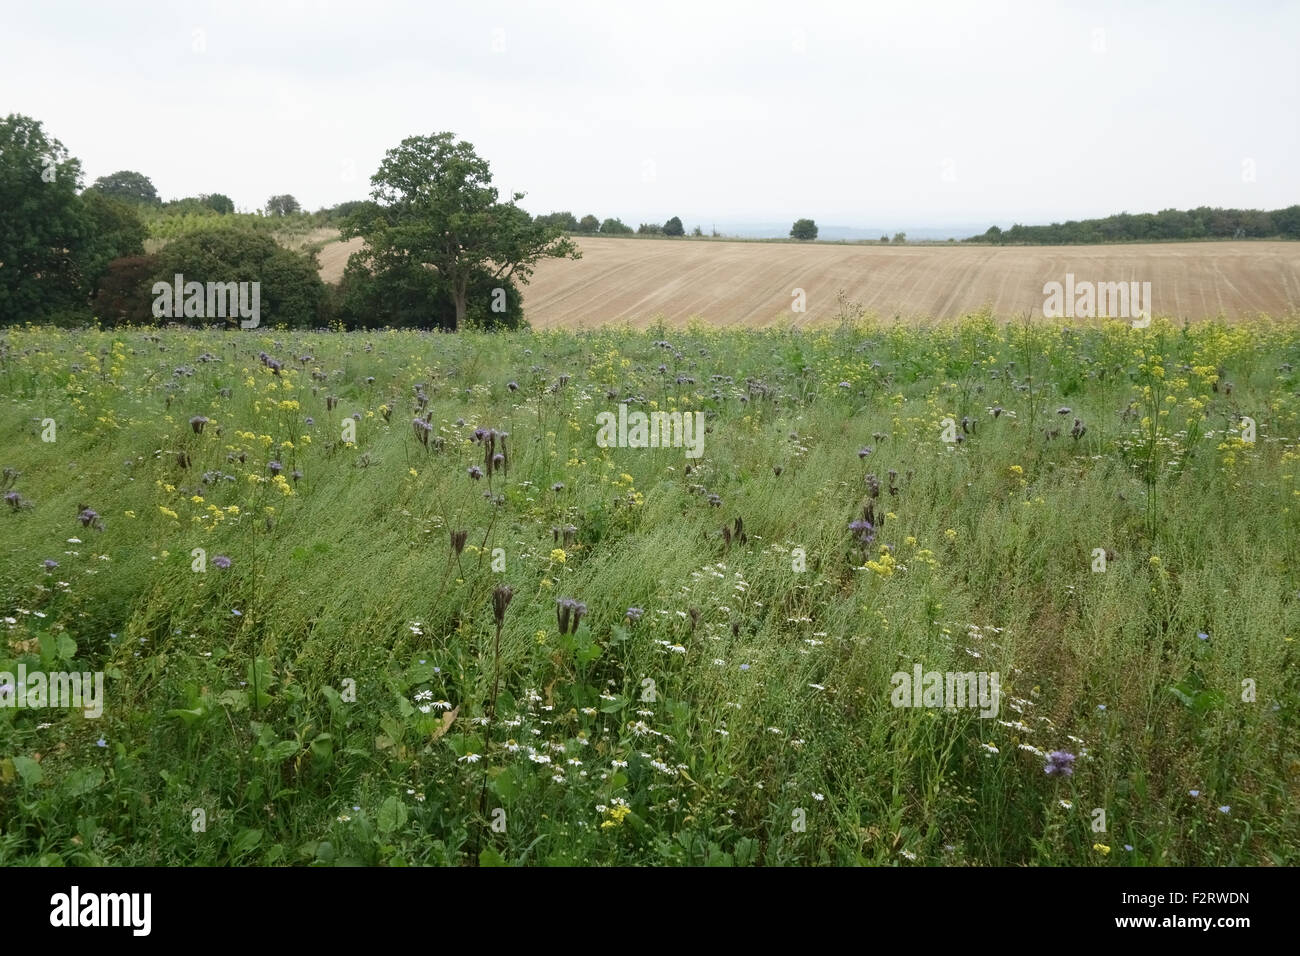 Wildflower area with flowering plants to attract insects and wildlife alongside farm crops,  Berkshire, September - Stock Image